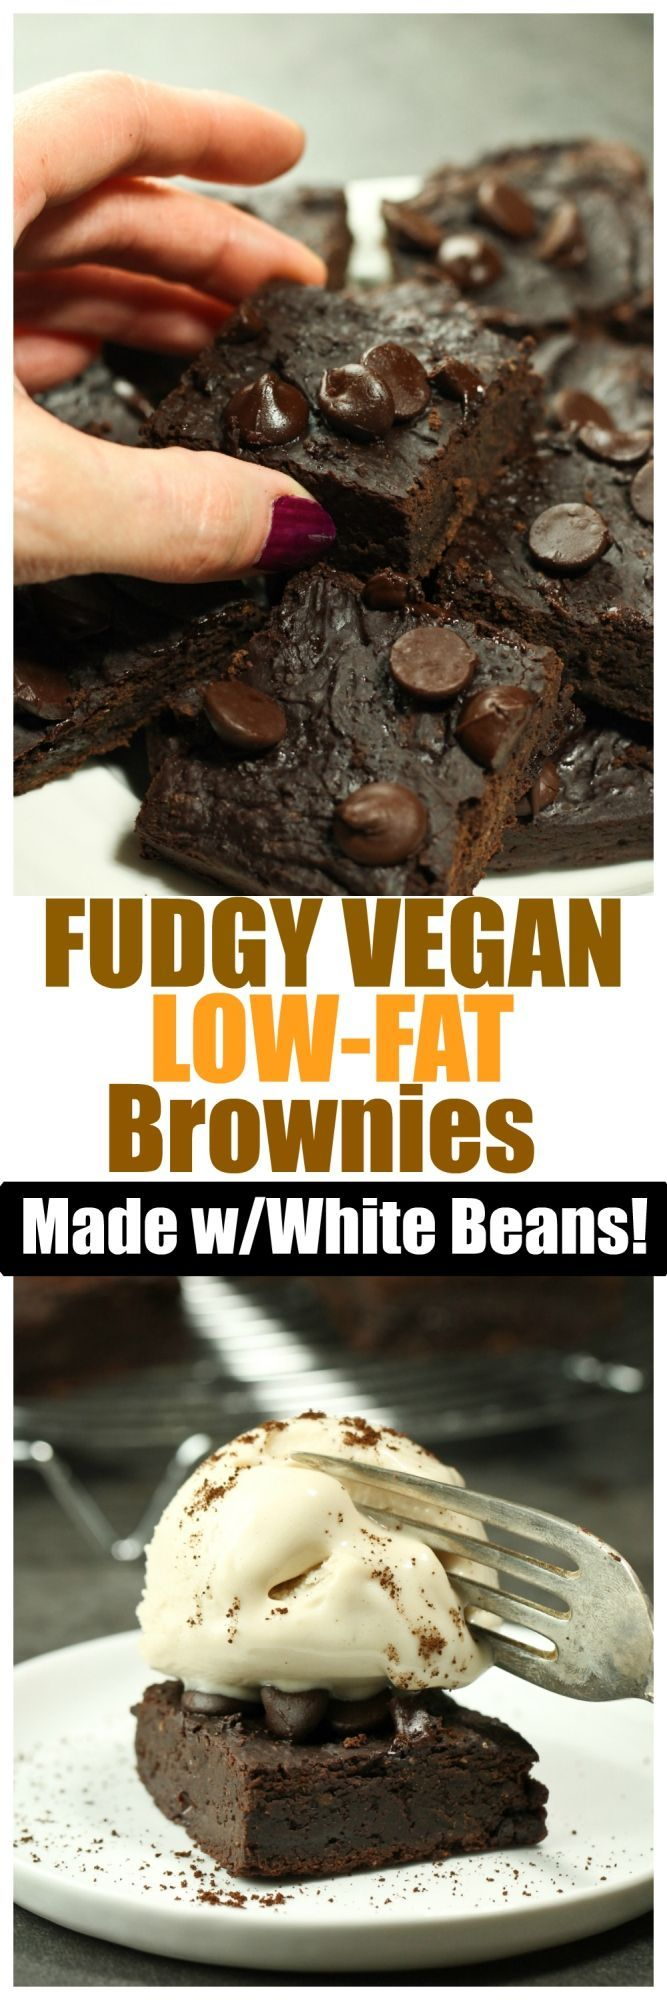 Fudgy Vegan Low-Fat Brownies (Gluten-free and Oil-free!)